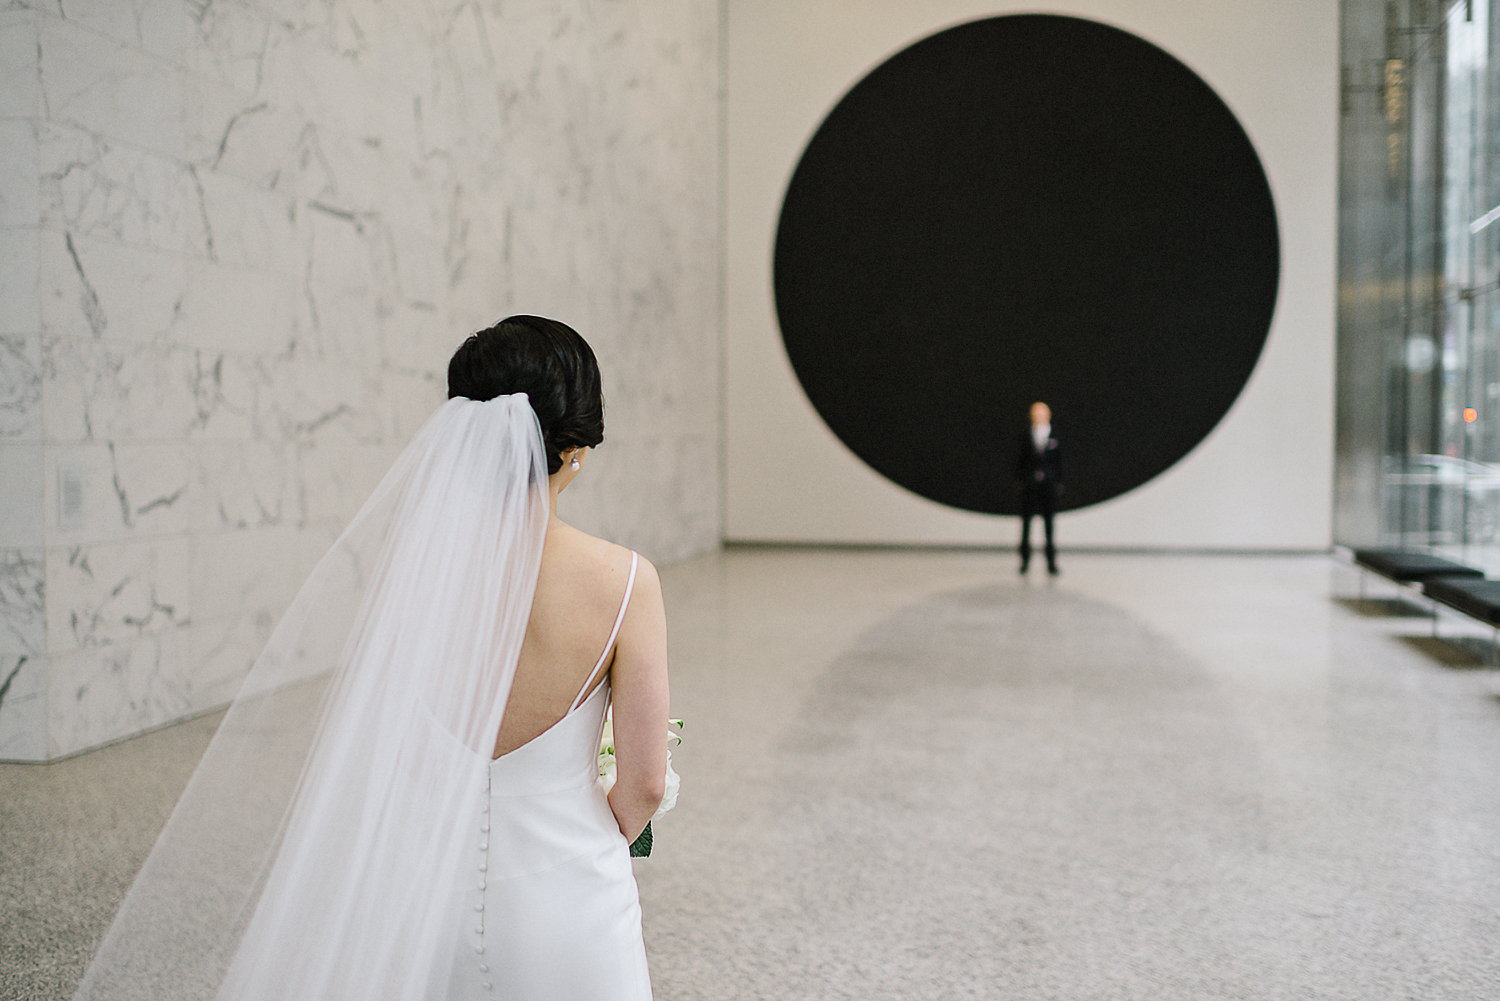 Best-Wedding-Photographers-Toronto_-Urban-City-Wedding-Photography-Downtown-Toronto-Photographer_Vintage-Bride-and-Groom-Details_The-Chase-Wedding-Venue_Candid-Photojournalistic-Documentary-Epic-First-Look-Bride-Seeing-Groom-follow-angle.jpg